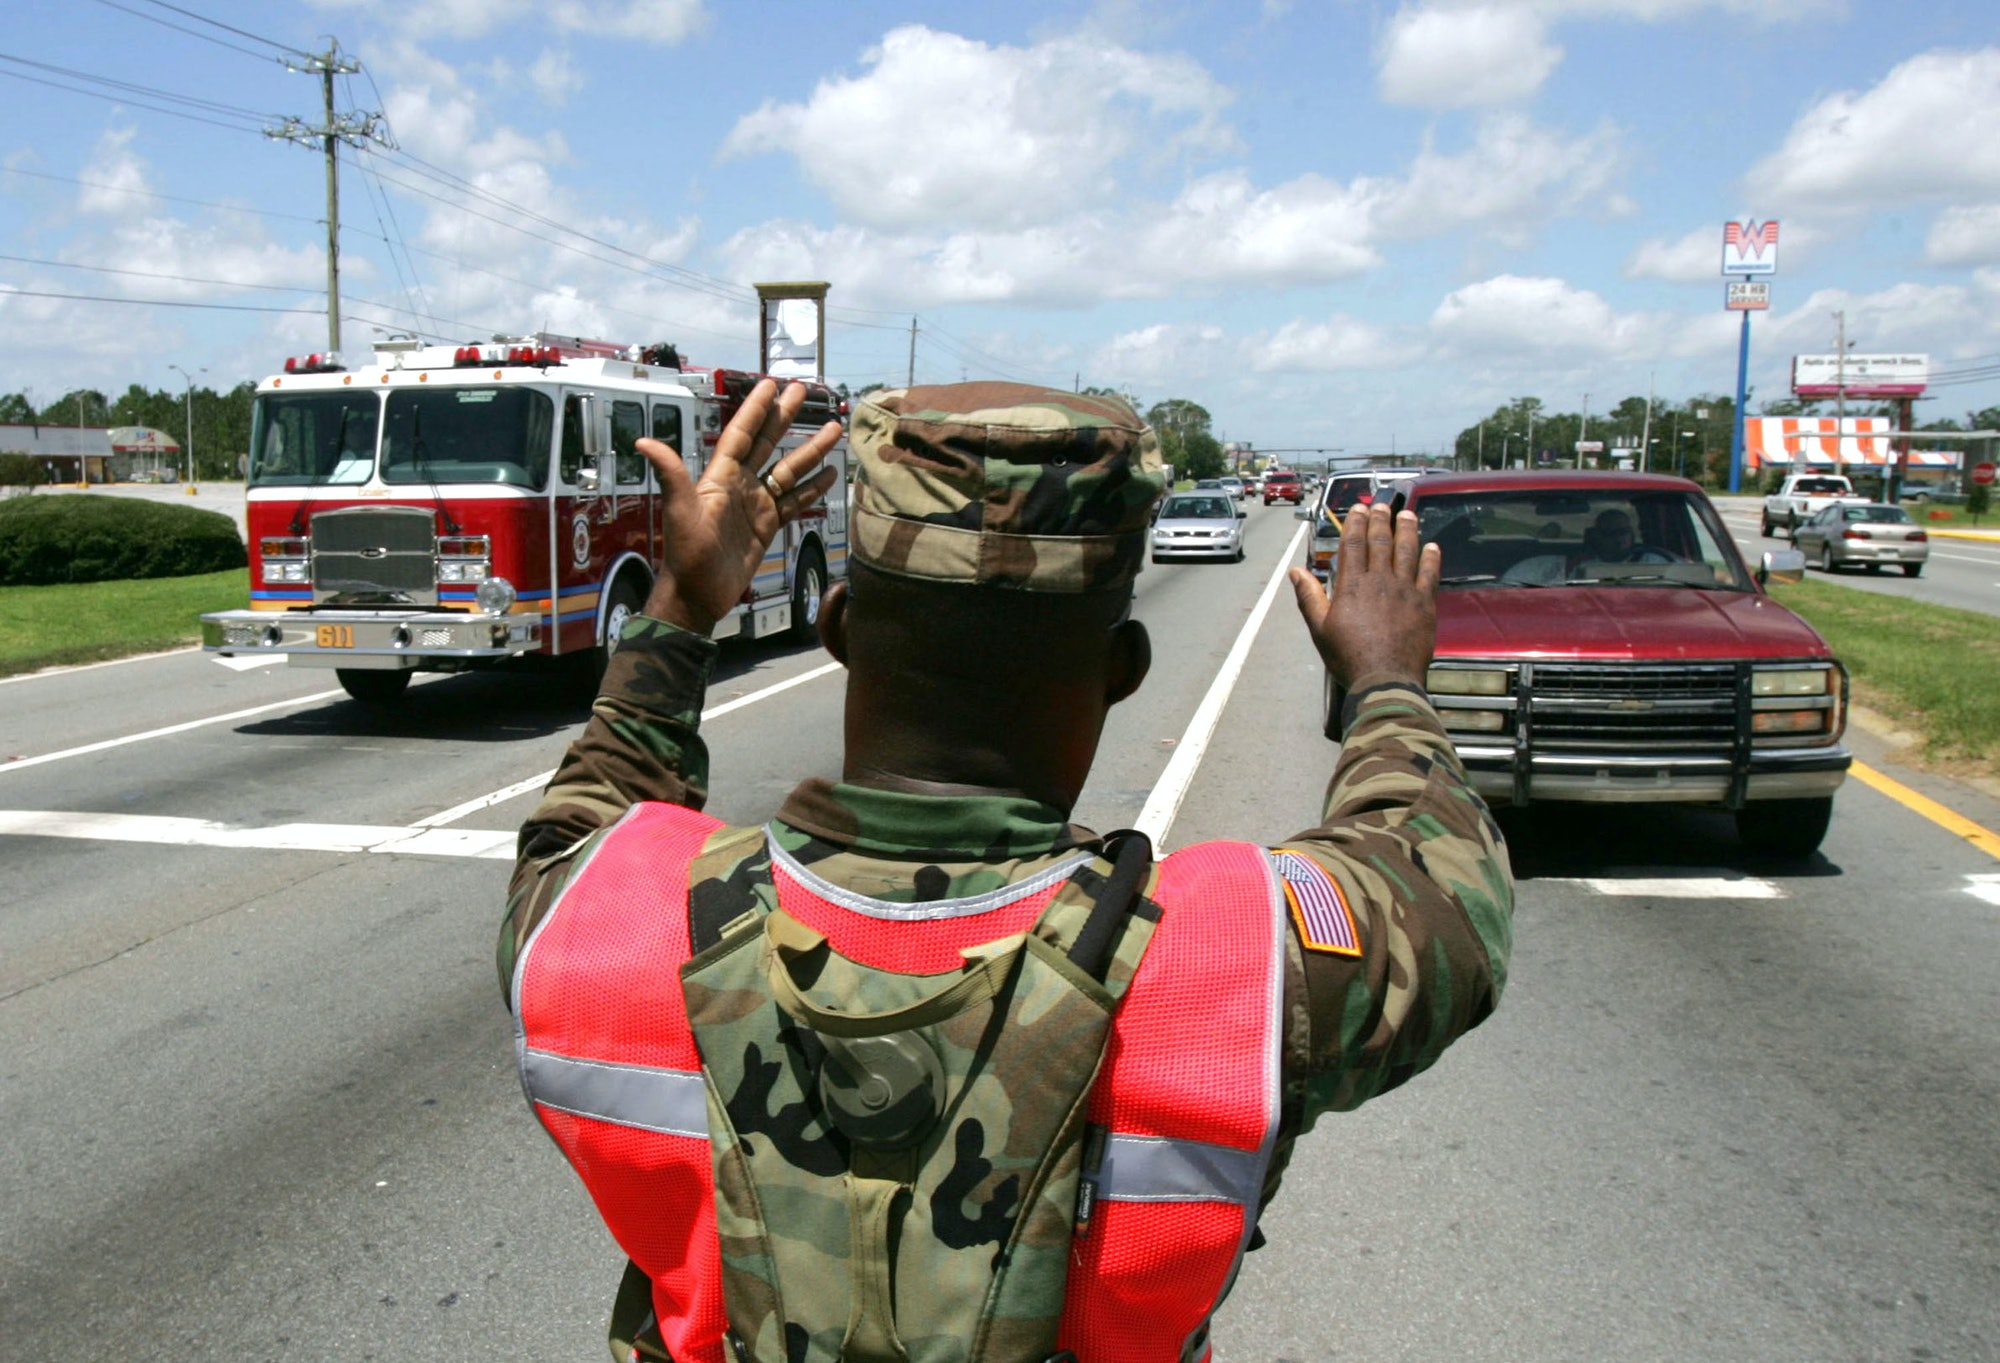 PENSACOLA, FL - JULY 11: US National Guardsman Sgt. Robert Gaines directs traffic July 11,2005in inPensacola, Florida. He and other members of the 1st Battalion 265th ADA National Guard unit were activated to help with the recovery efforts from Hurricane Dennis. Traffic became congested as emergency vehicles and returning residents congested the cities roadways. (Photo by John Moore/Getty Images)